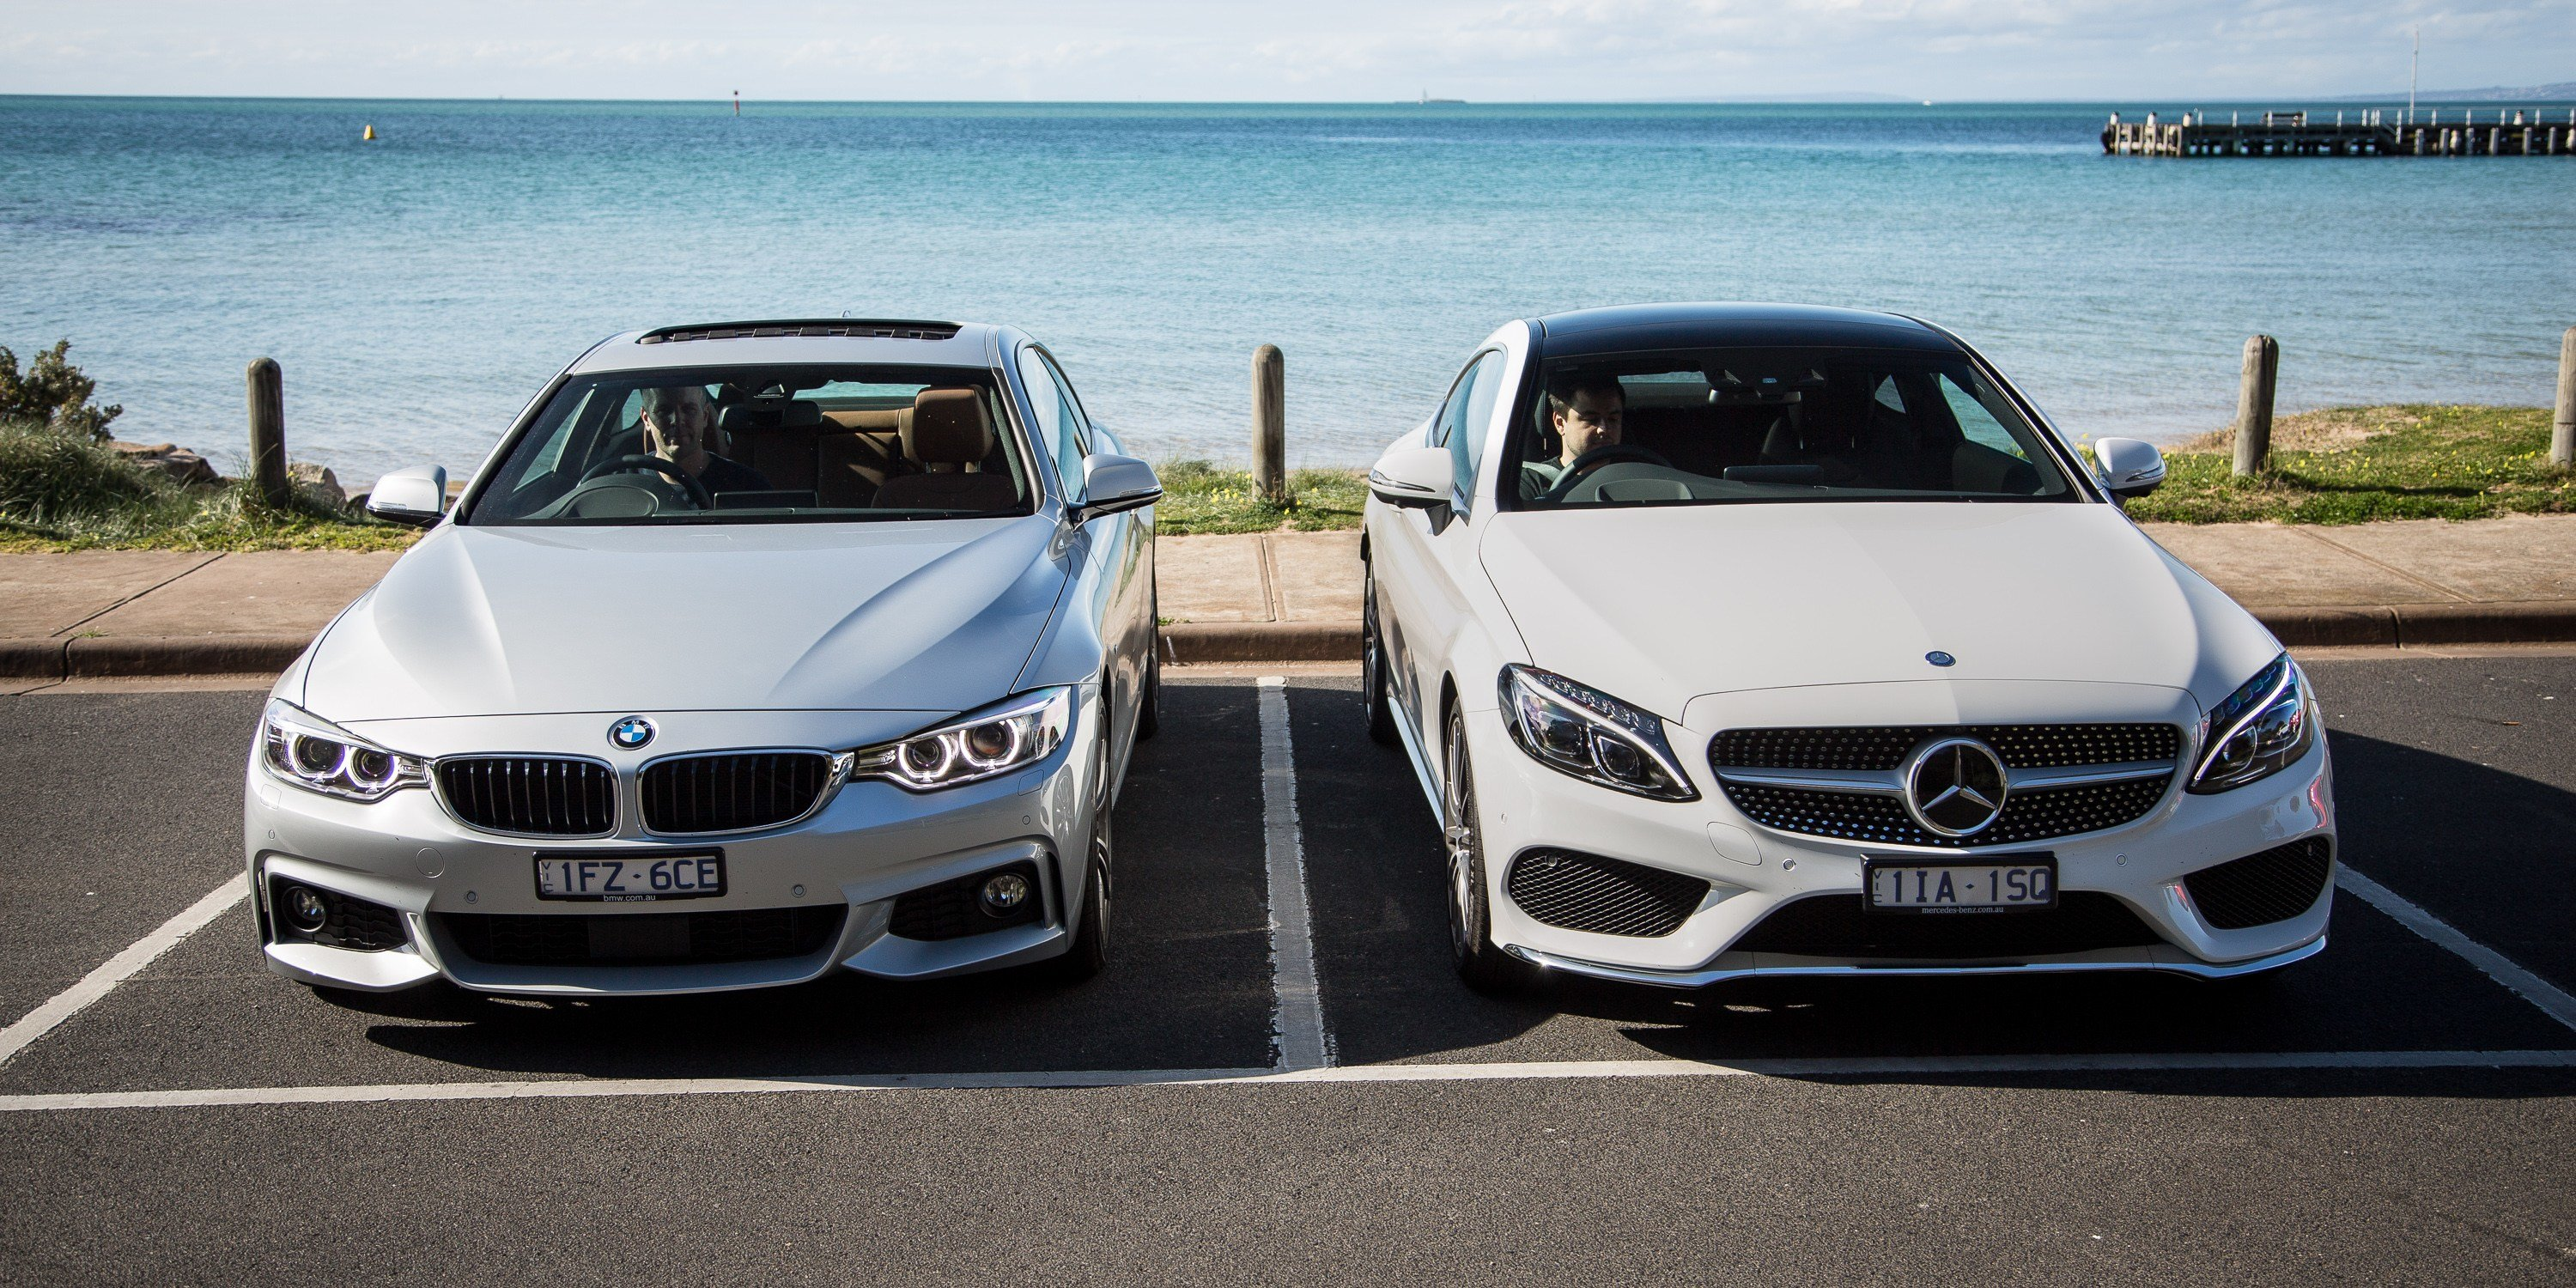 Latest 2016 Mercedes Benz C300 Coupe V Bmw 430I Comparison Free Download